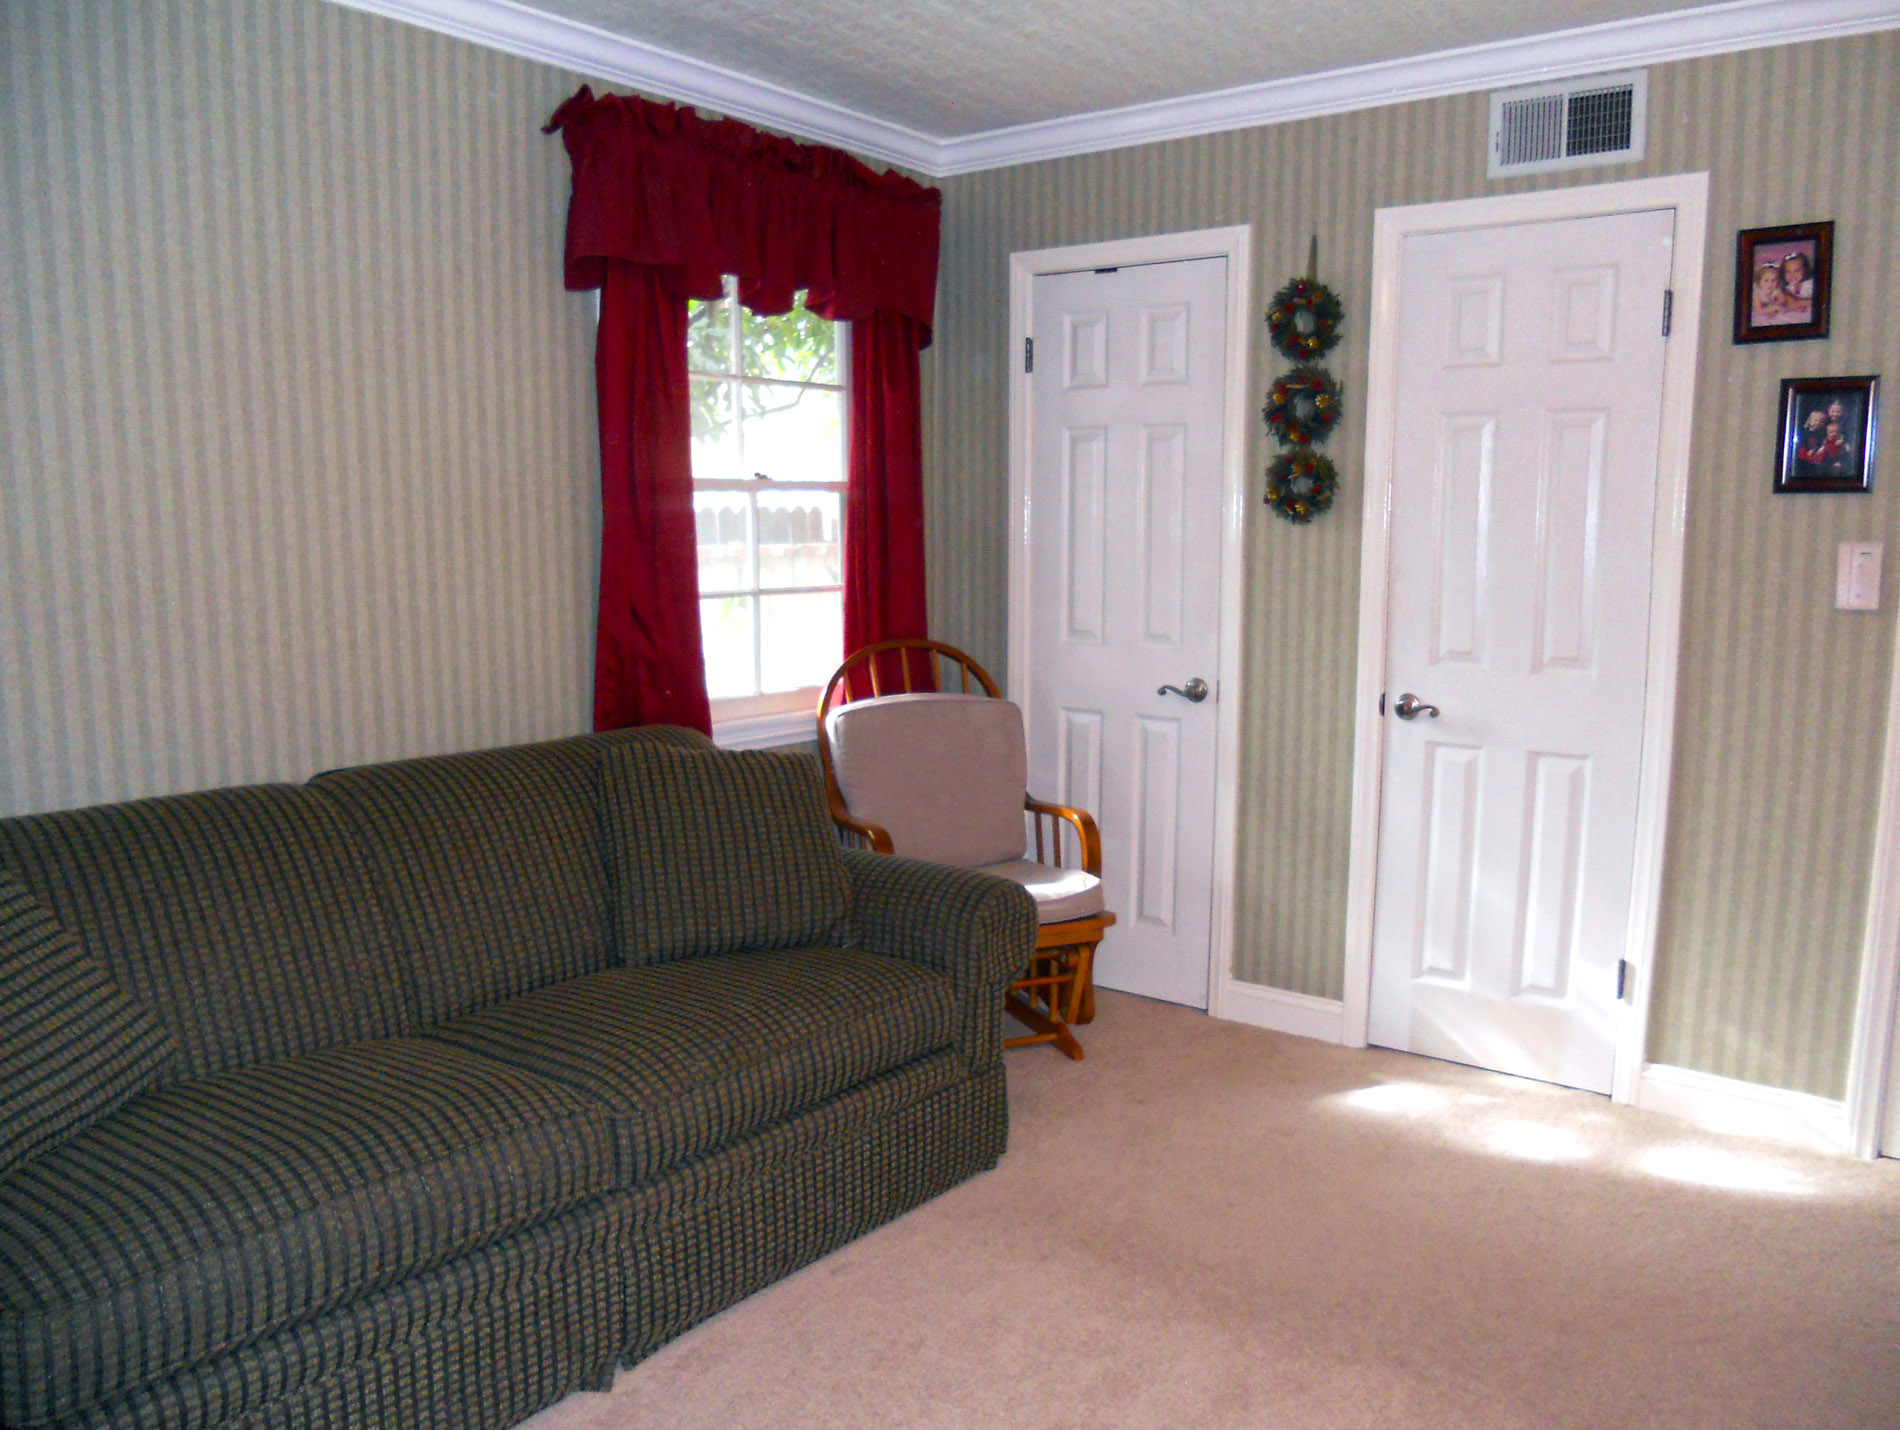 Alternate view of secondary bedroom with two closets, new doors and crown molding.